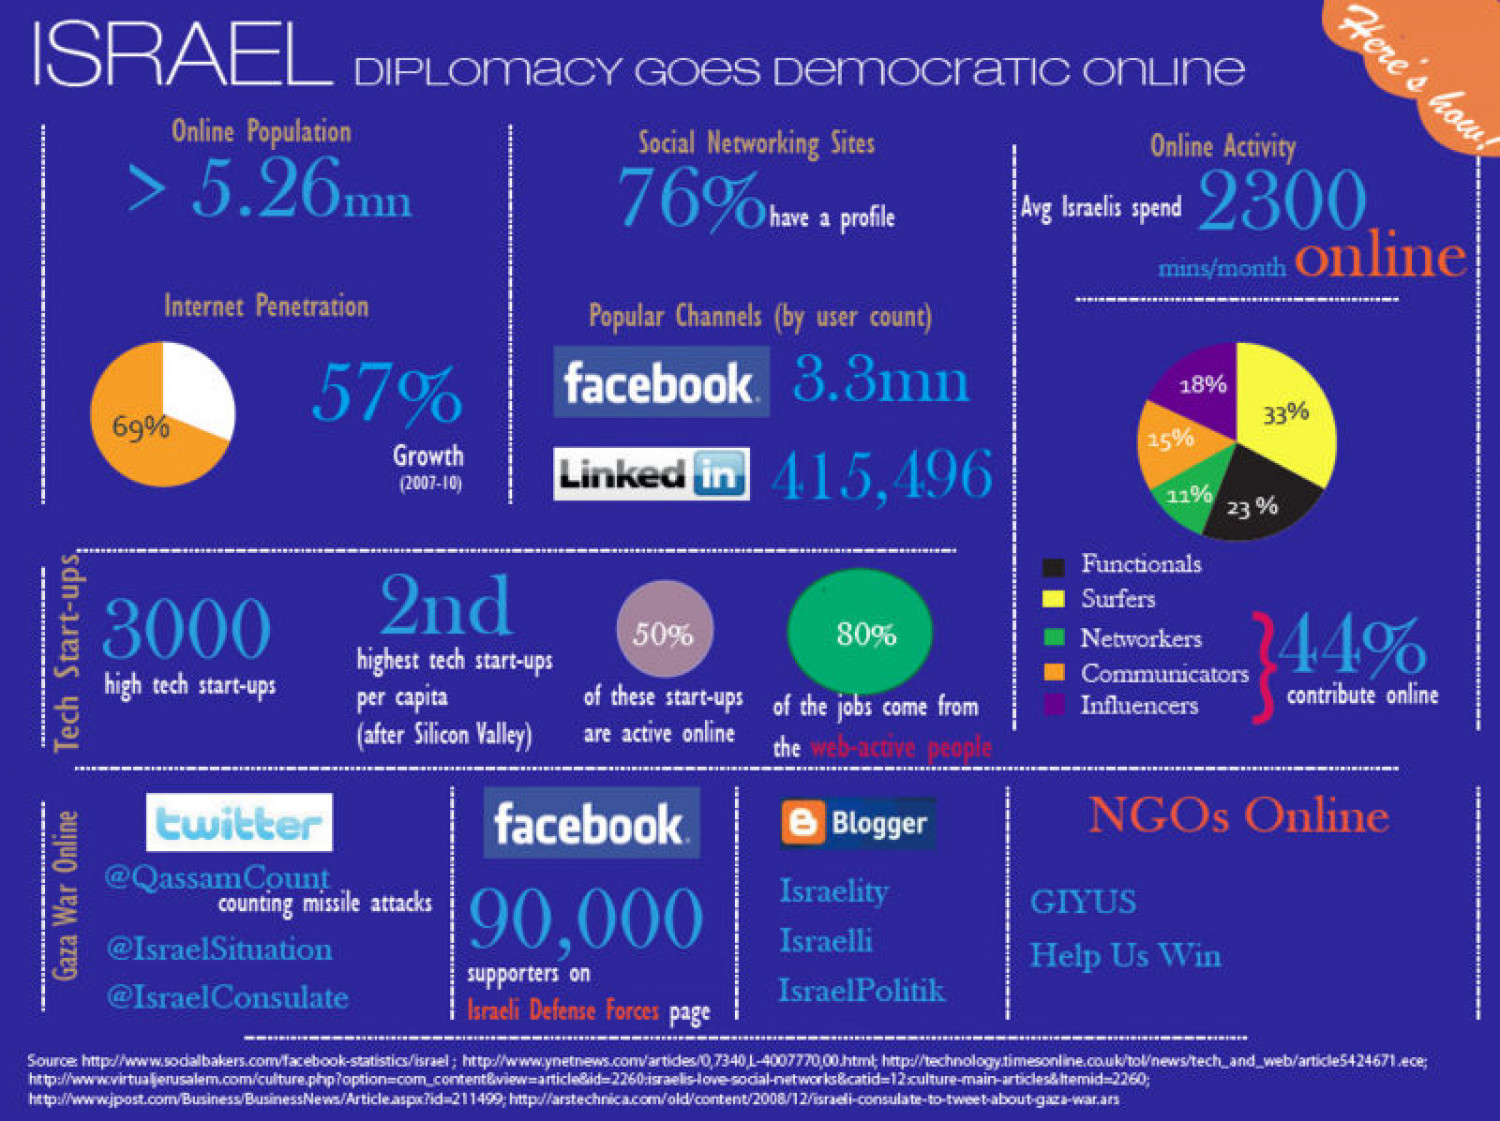 Israel: Diplomacy Goes Democratic Online Infographic